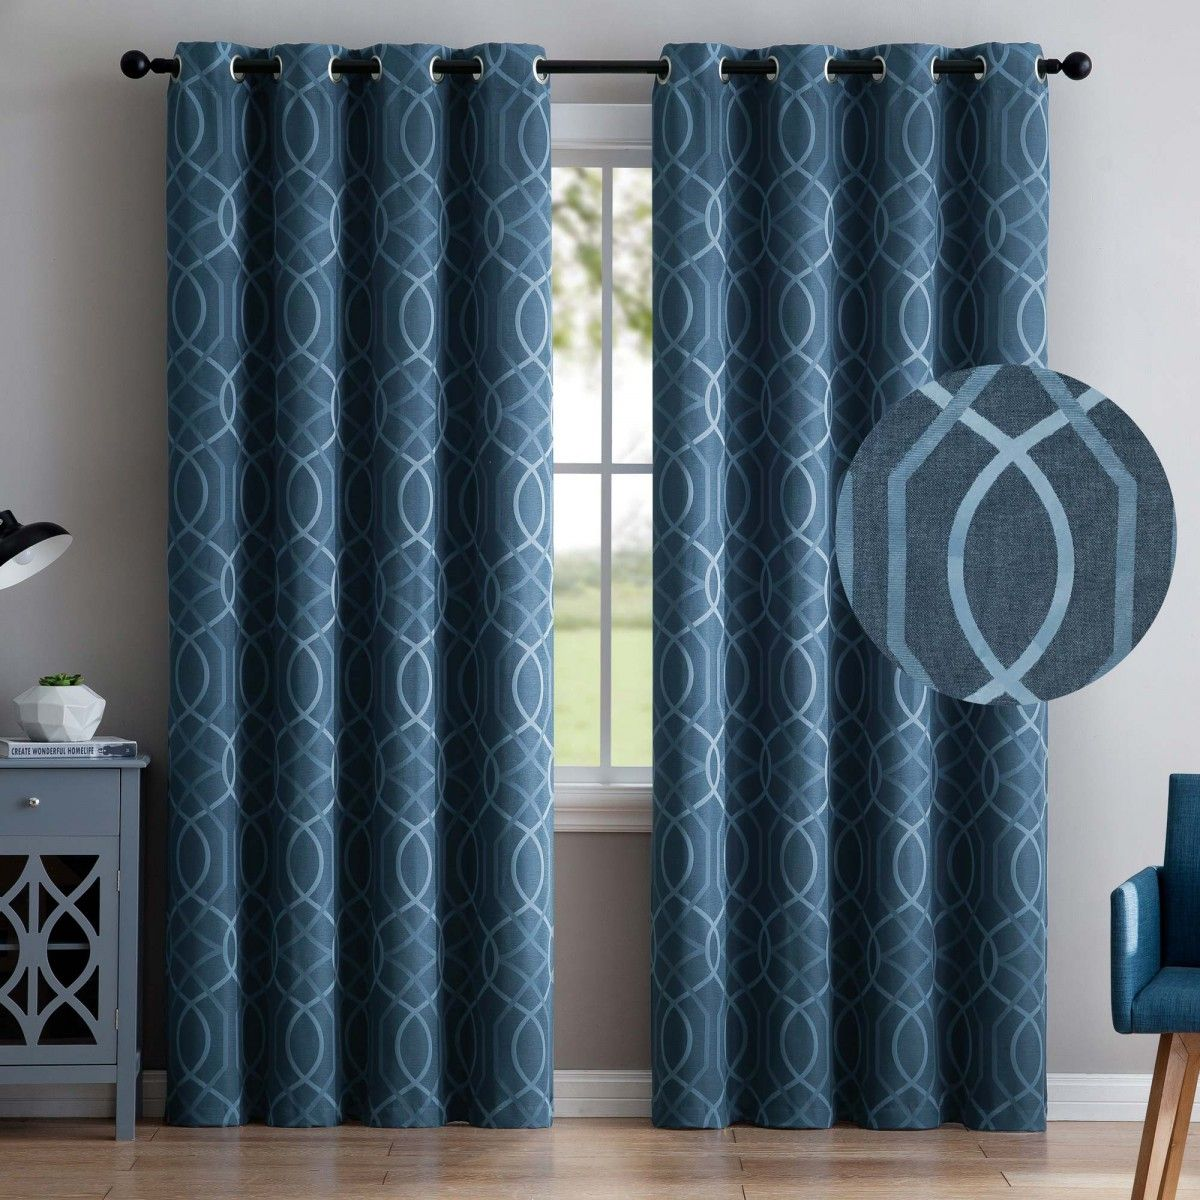 VCNY Aries 2 Blackout Window Curtains 96\